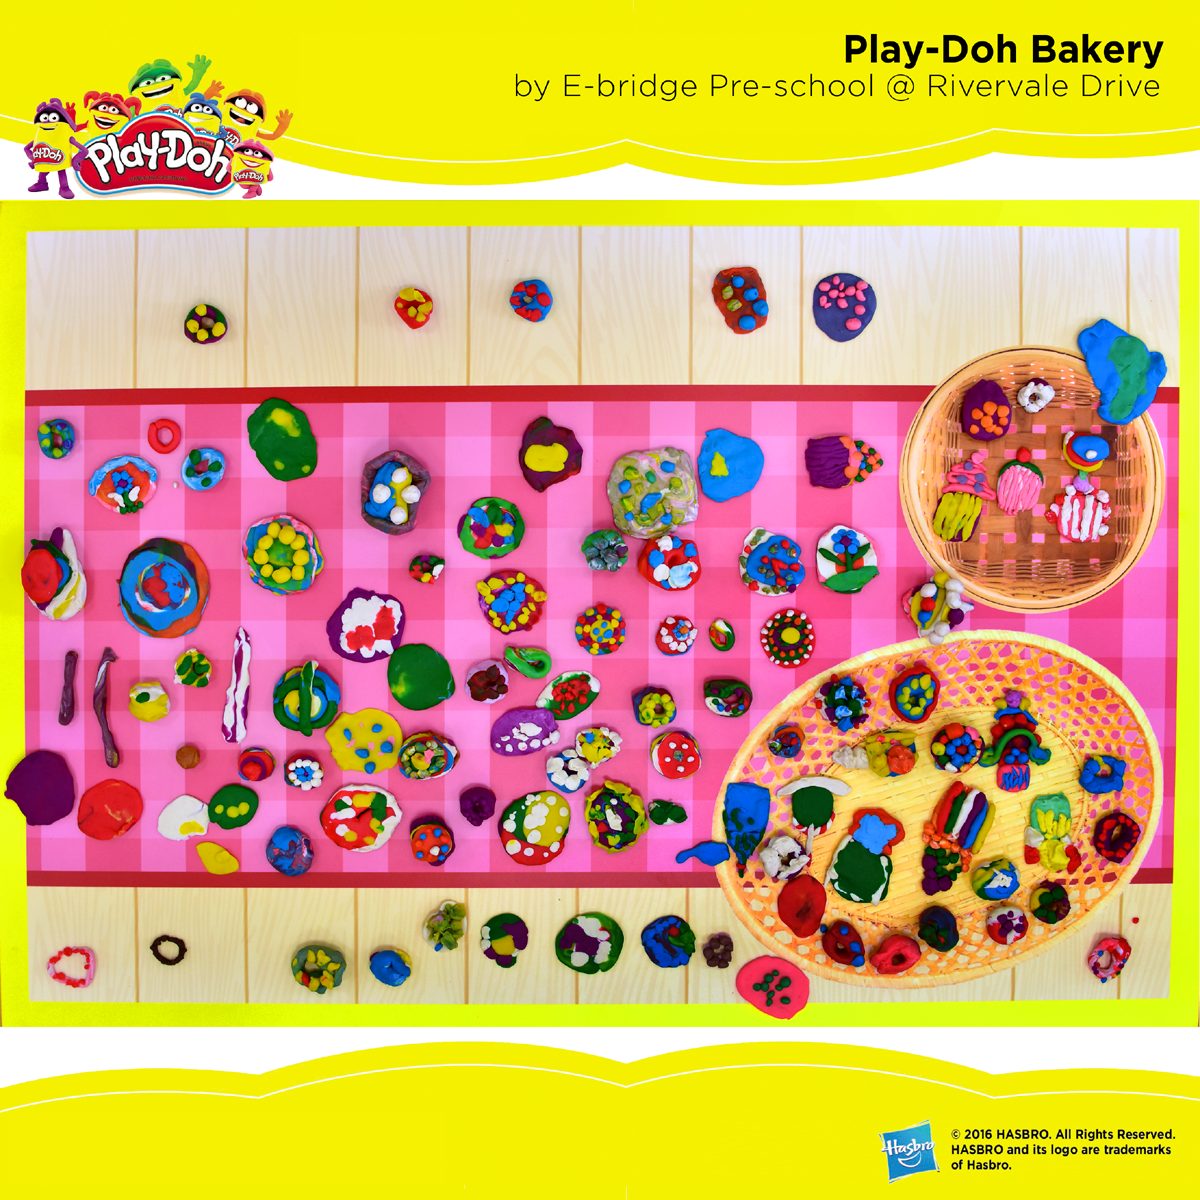 Play-Doh Bakery by E-bridge Pre-school @ Rivervale Drive